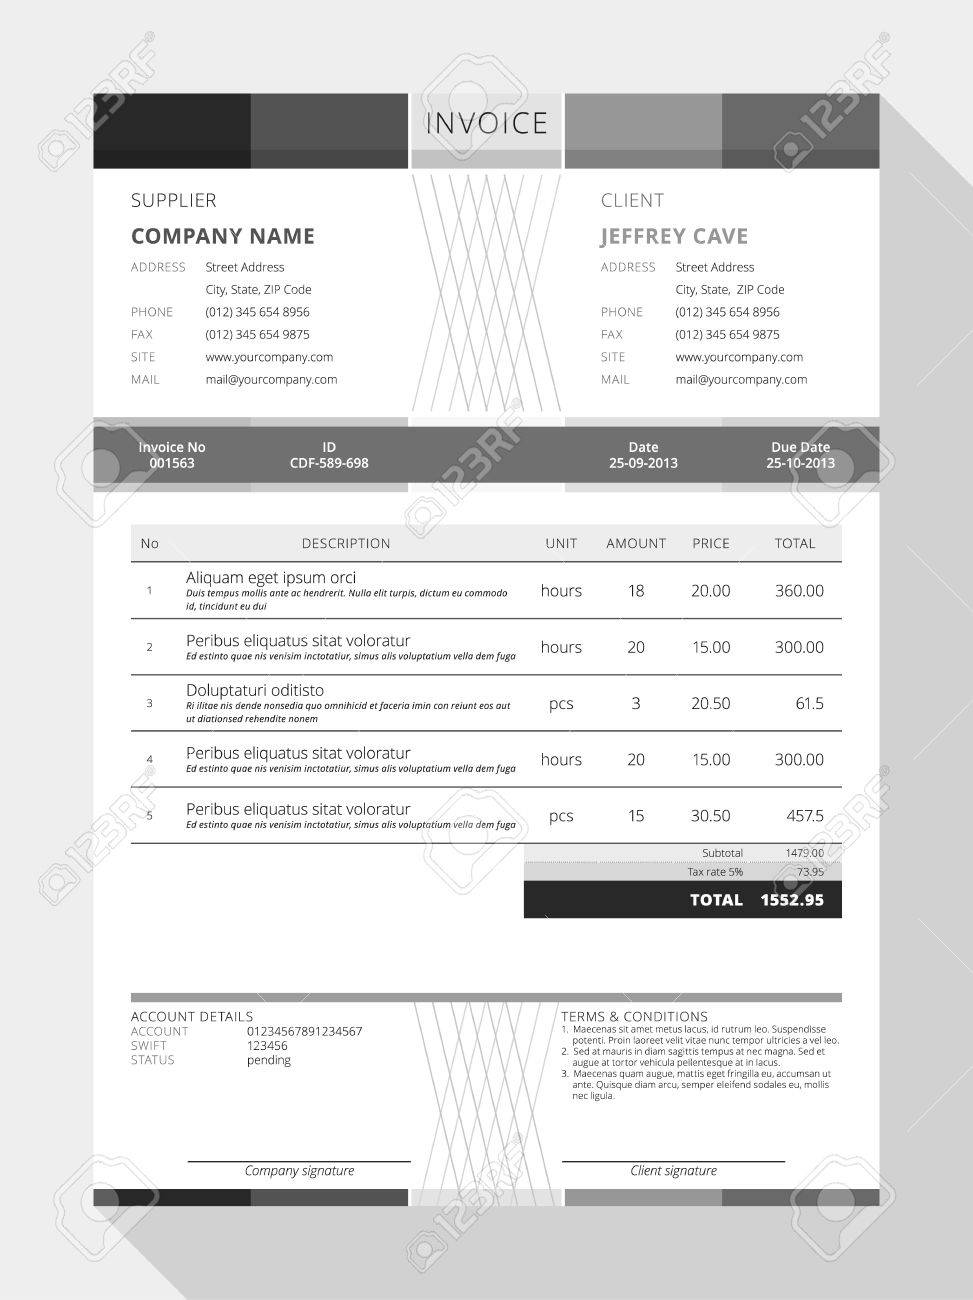 Ebitus  Marvelous Design An Invoice  Professional Graphic Design Invoice  With Fair Vector Customizable Invoice Form Template Design Vector   Design An Invoice With Endearing Contoh Invoice Also Invoice Payments In Addition Audi A Invoice Price And Proforma Invoice Vs Invoice As Well As Free Editable Invoice Template Additionally Videography Invoice From Happytomco With Ebitus  Fair Design An Invoice  Professional Graphic Design Invoice  With Endearing Vector Customizable Invoice Form Template Design Vector   Design An Invoice And Marvelous Contoh Invoice Also Invoice Payments In Addition Audi A Invoice Price From Happytomco